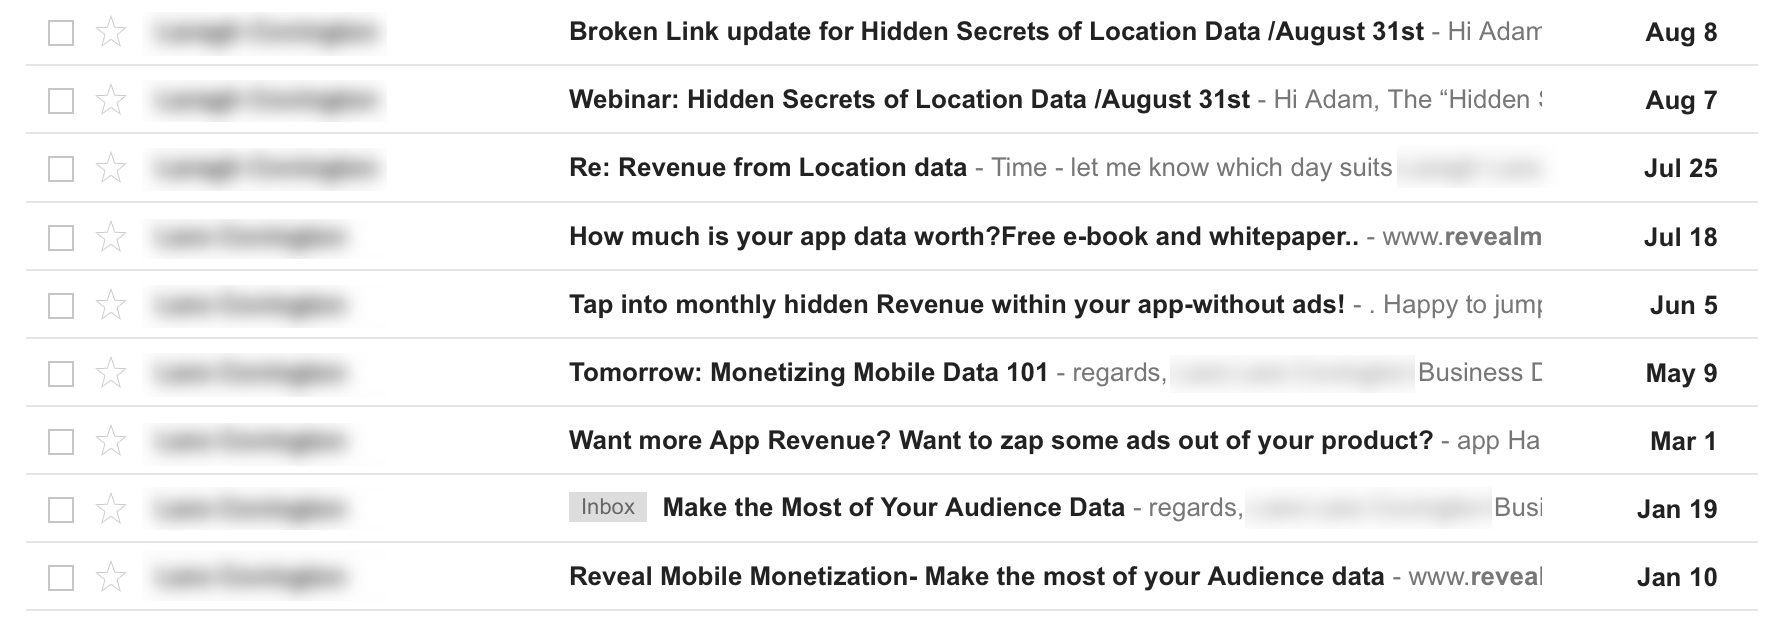 Screenshot of a list of unsolicited emails for location data